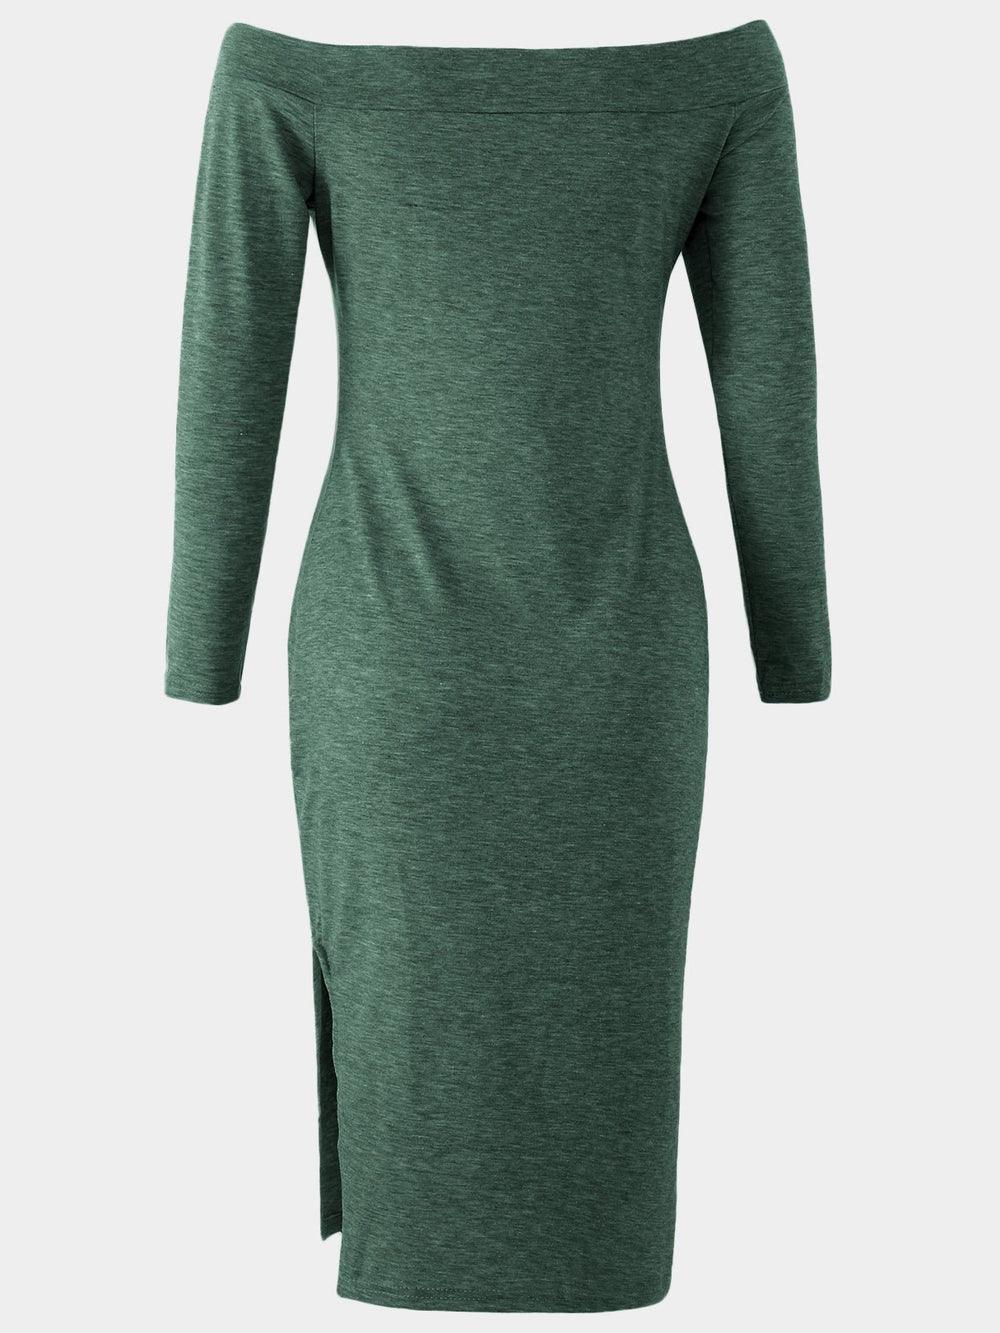 Ladies Green Off The Shoulder Dresses